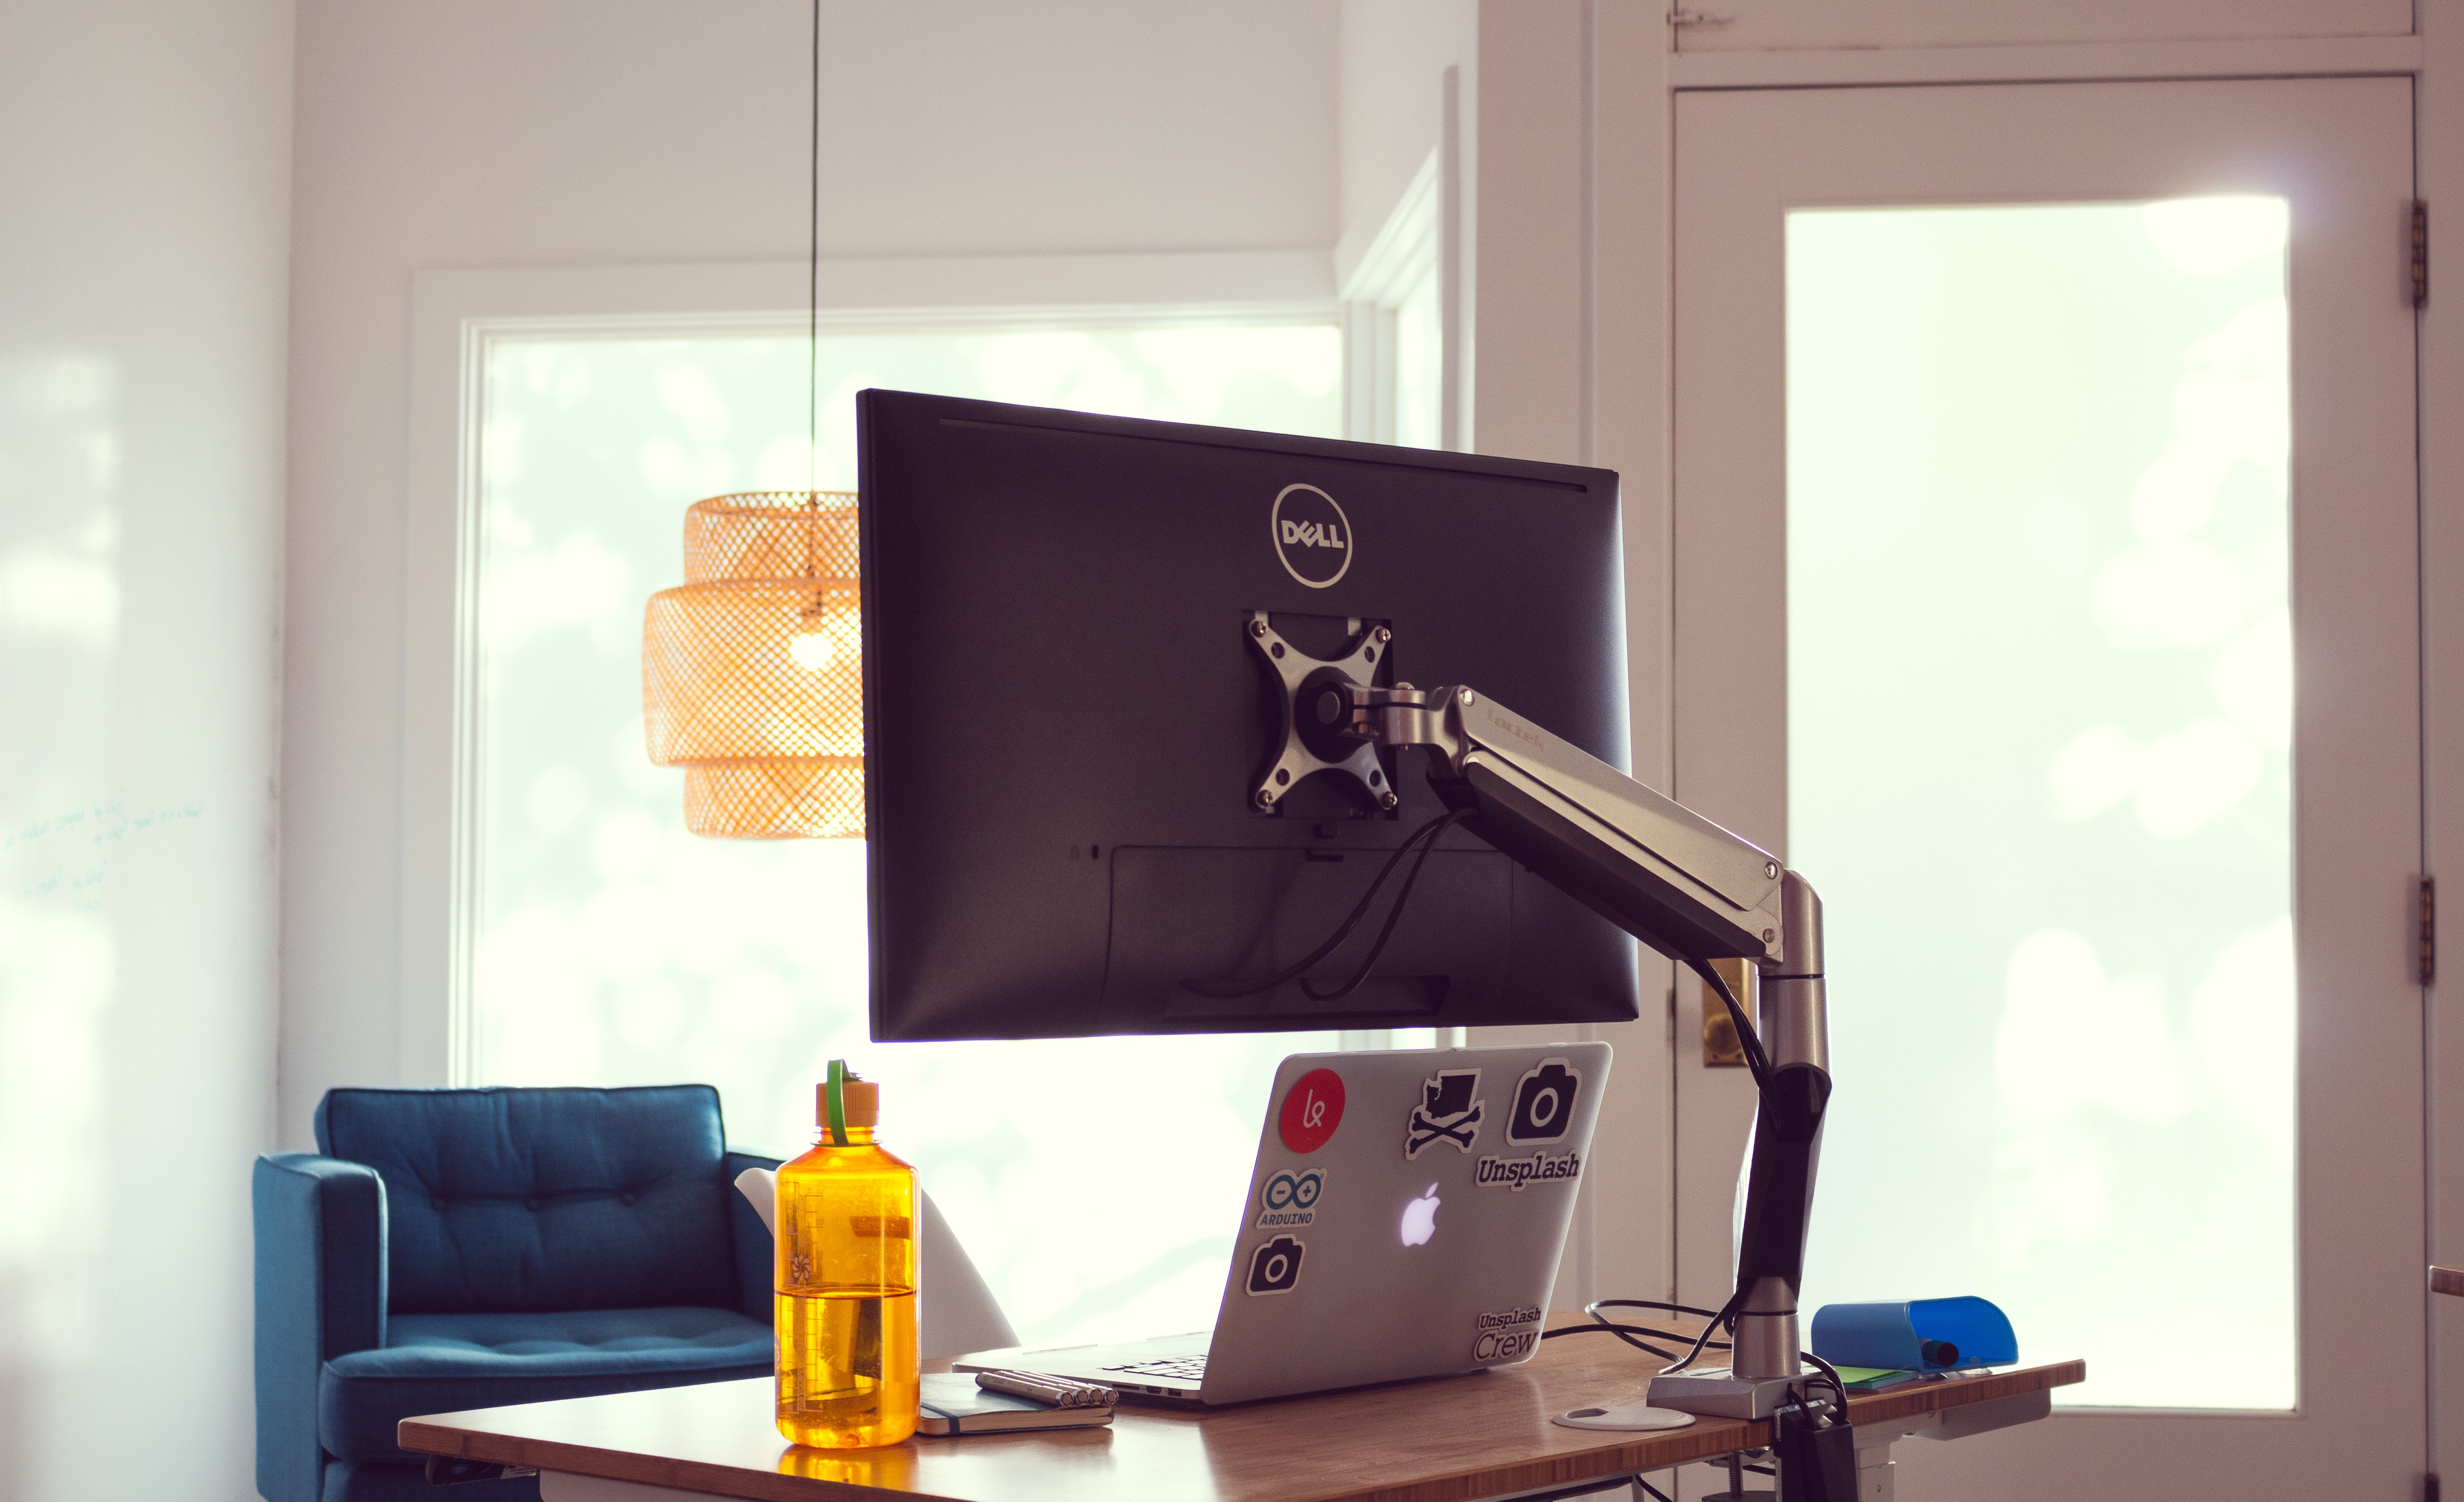 Dell monitor mounted on table